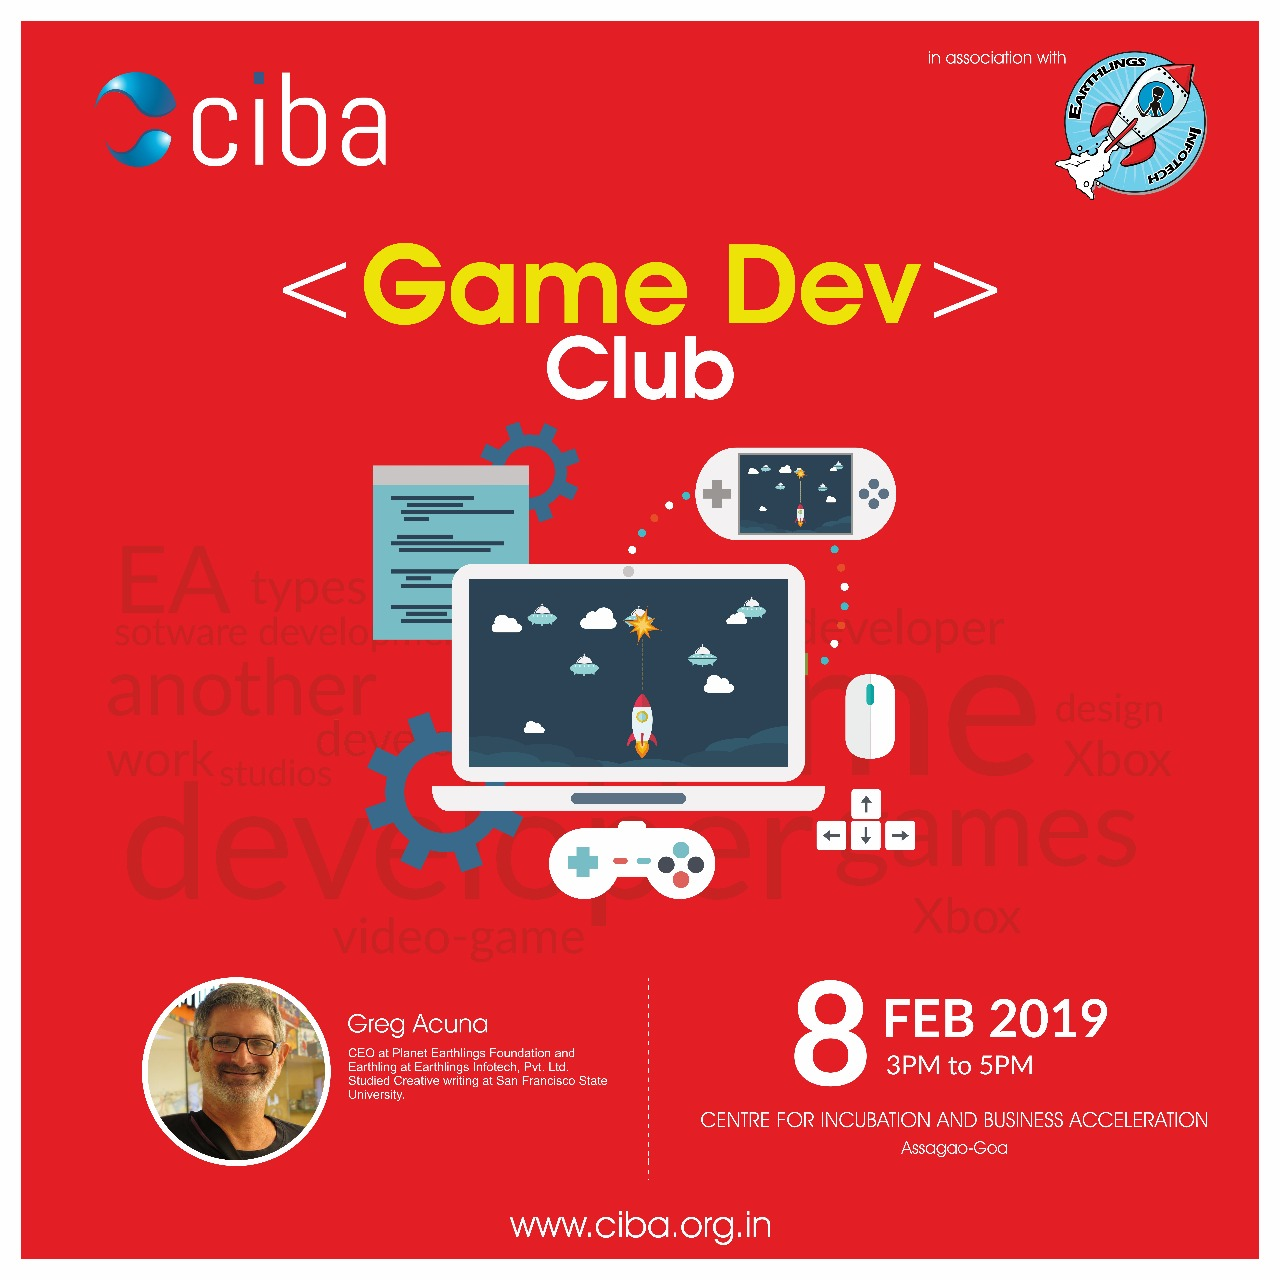 ciba-Game Developers Club